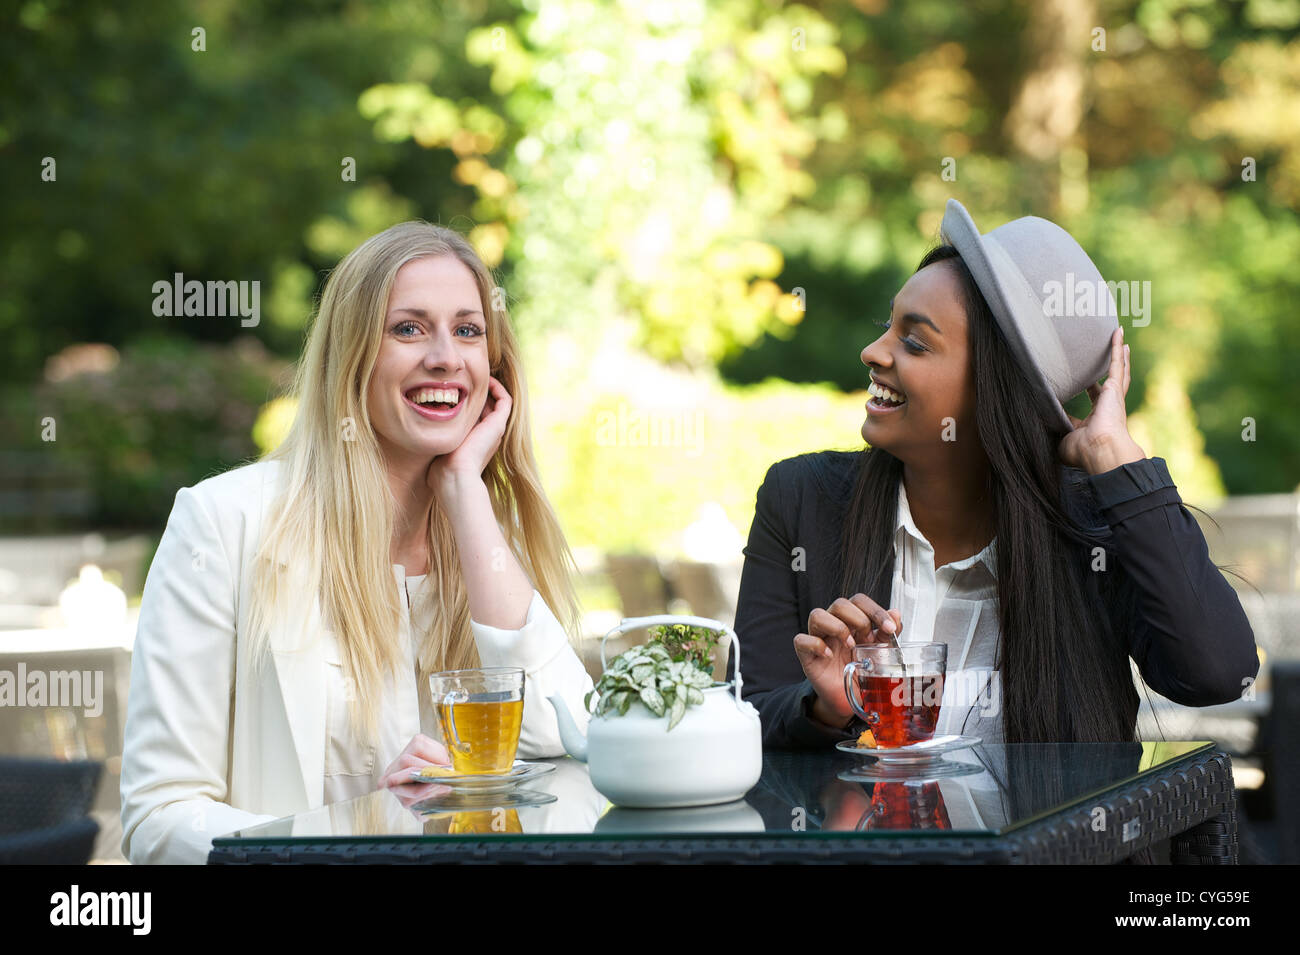 A couple of female friends sitting outdoors and smiling while drinking a cup of tea Stock Photo